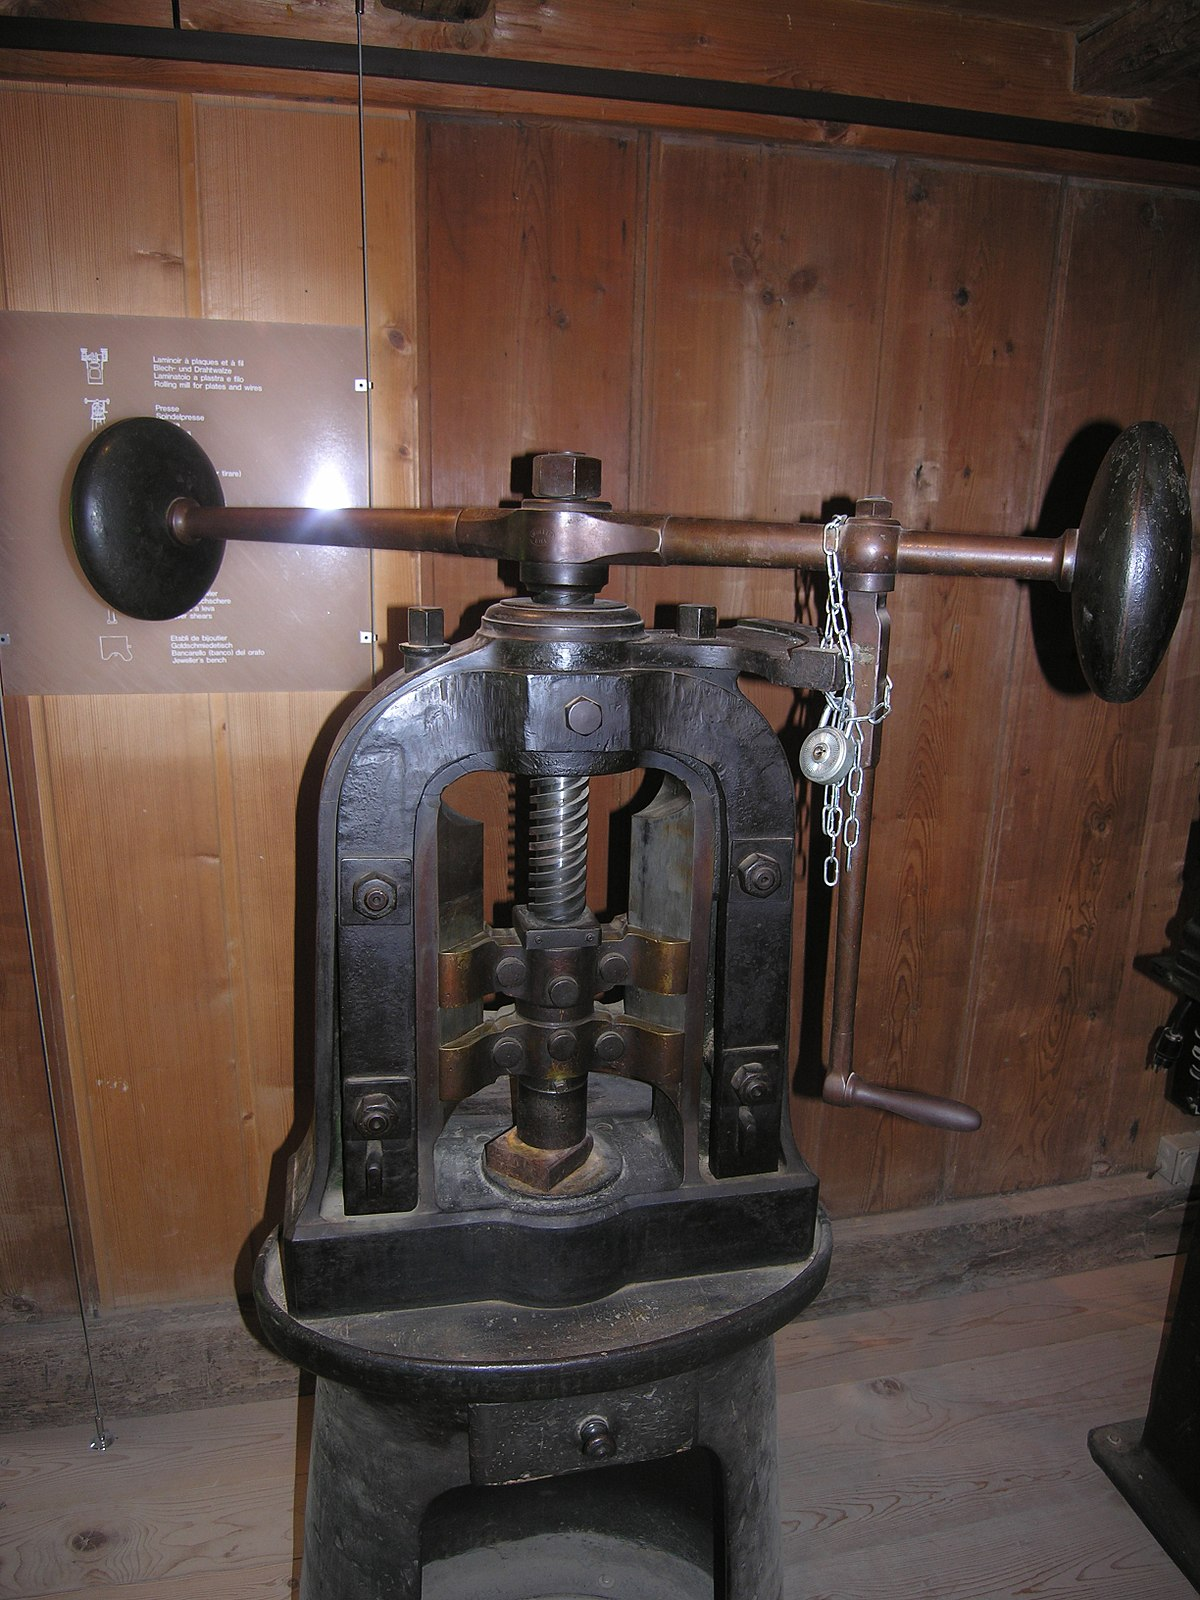 die pressing machine